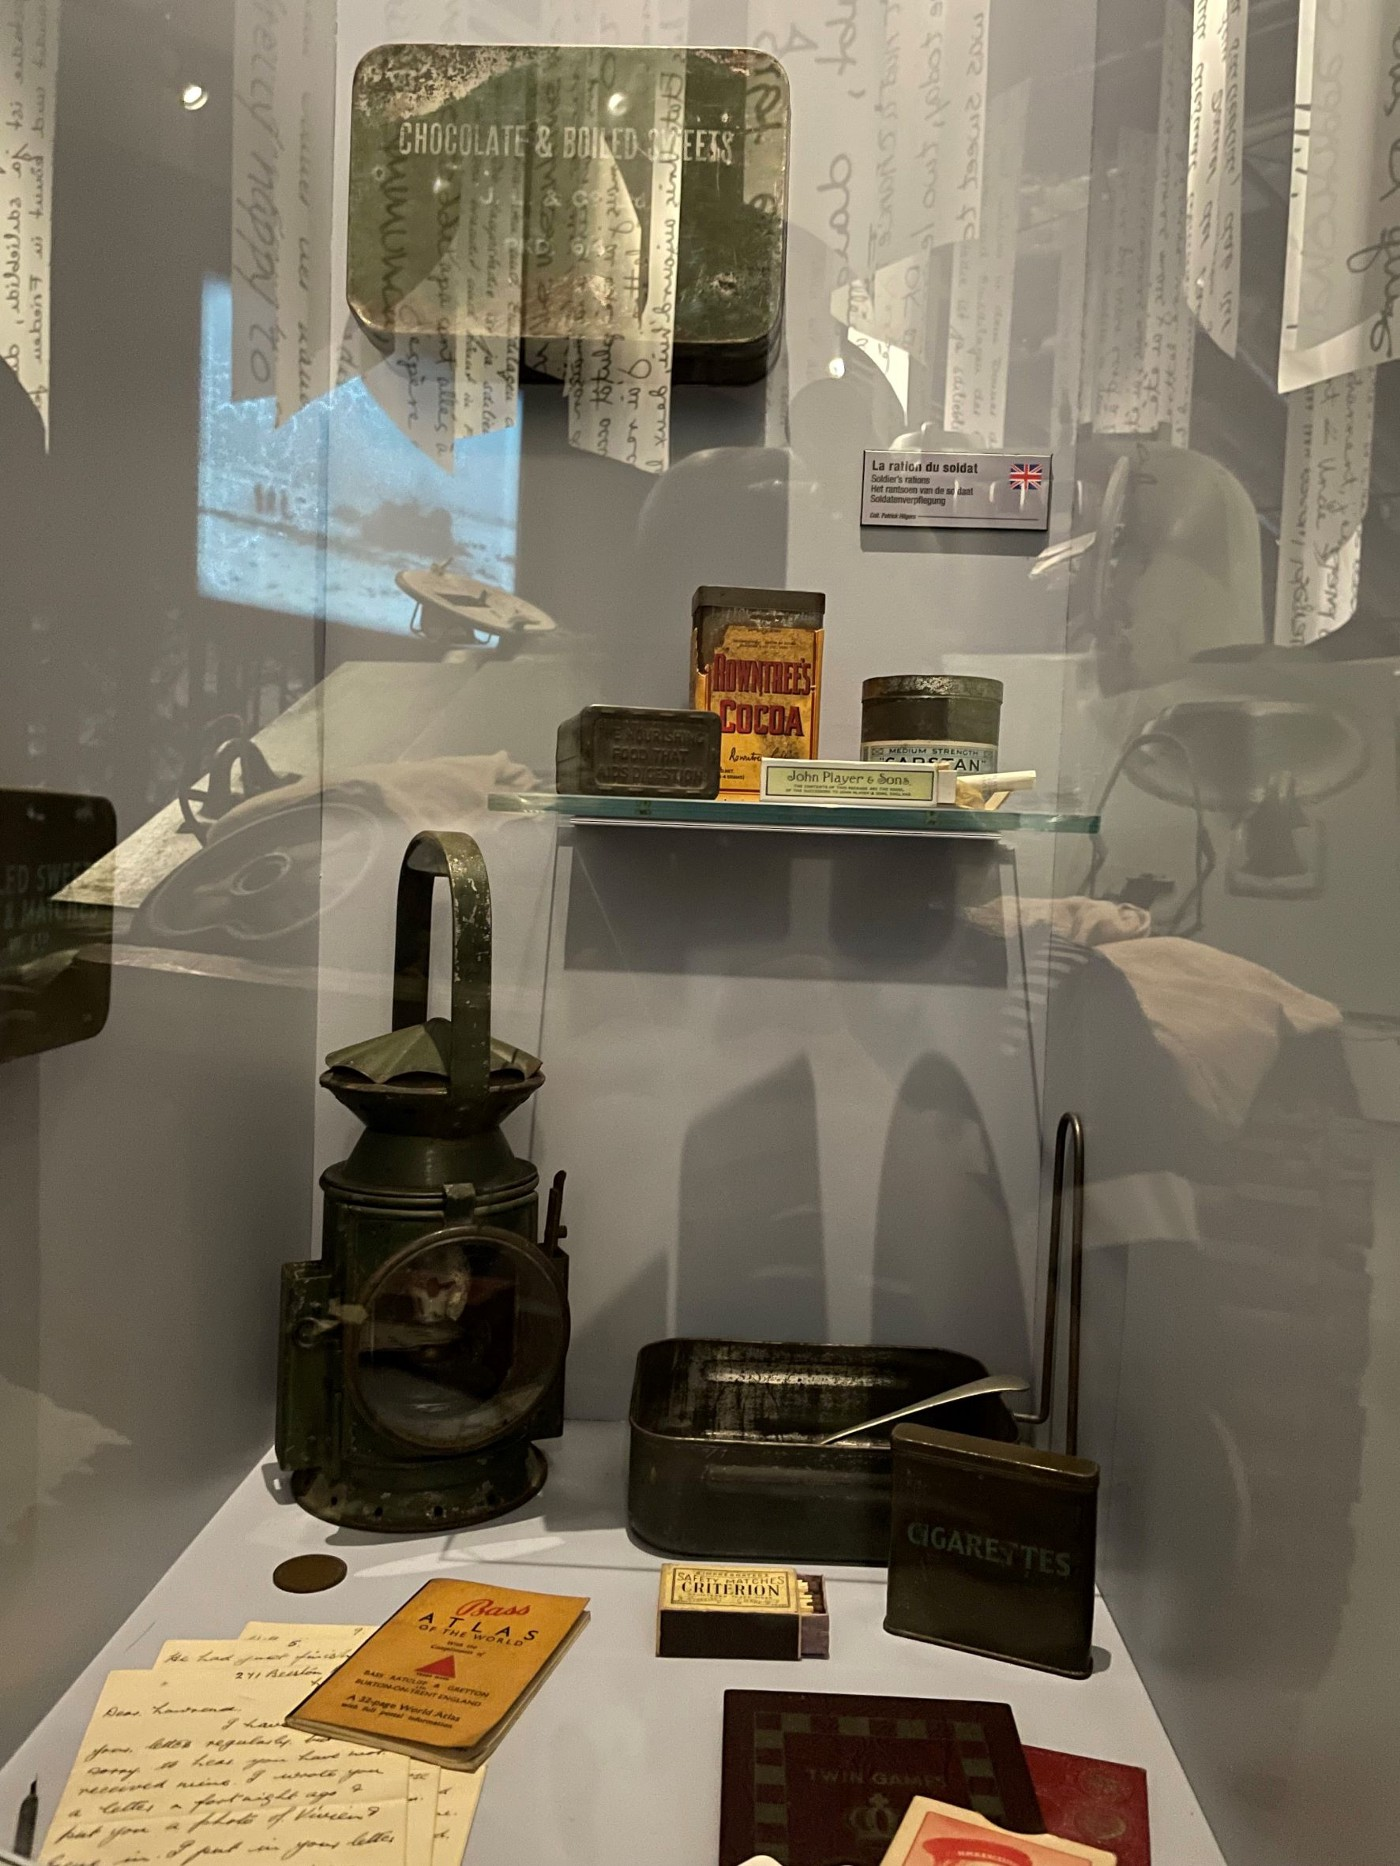 Chocolate tin box, lamp, cigarette box and lunch box displayed in the Bastogne war museum